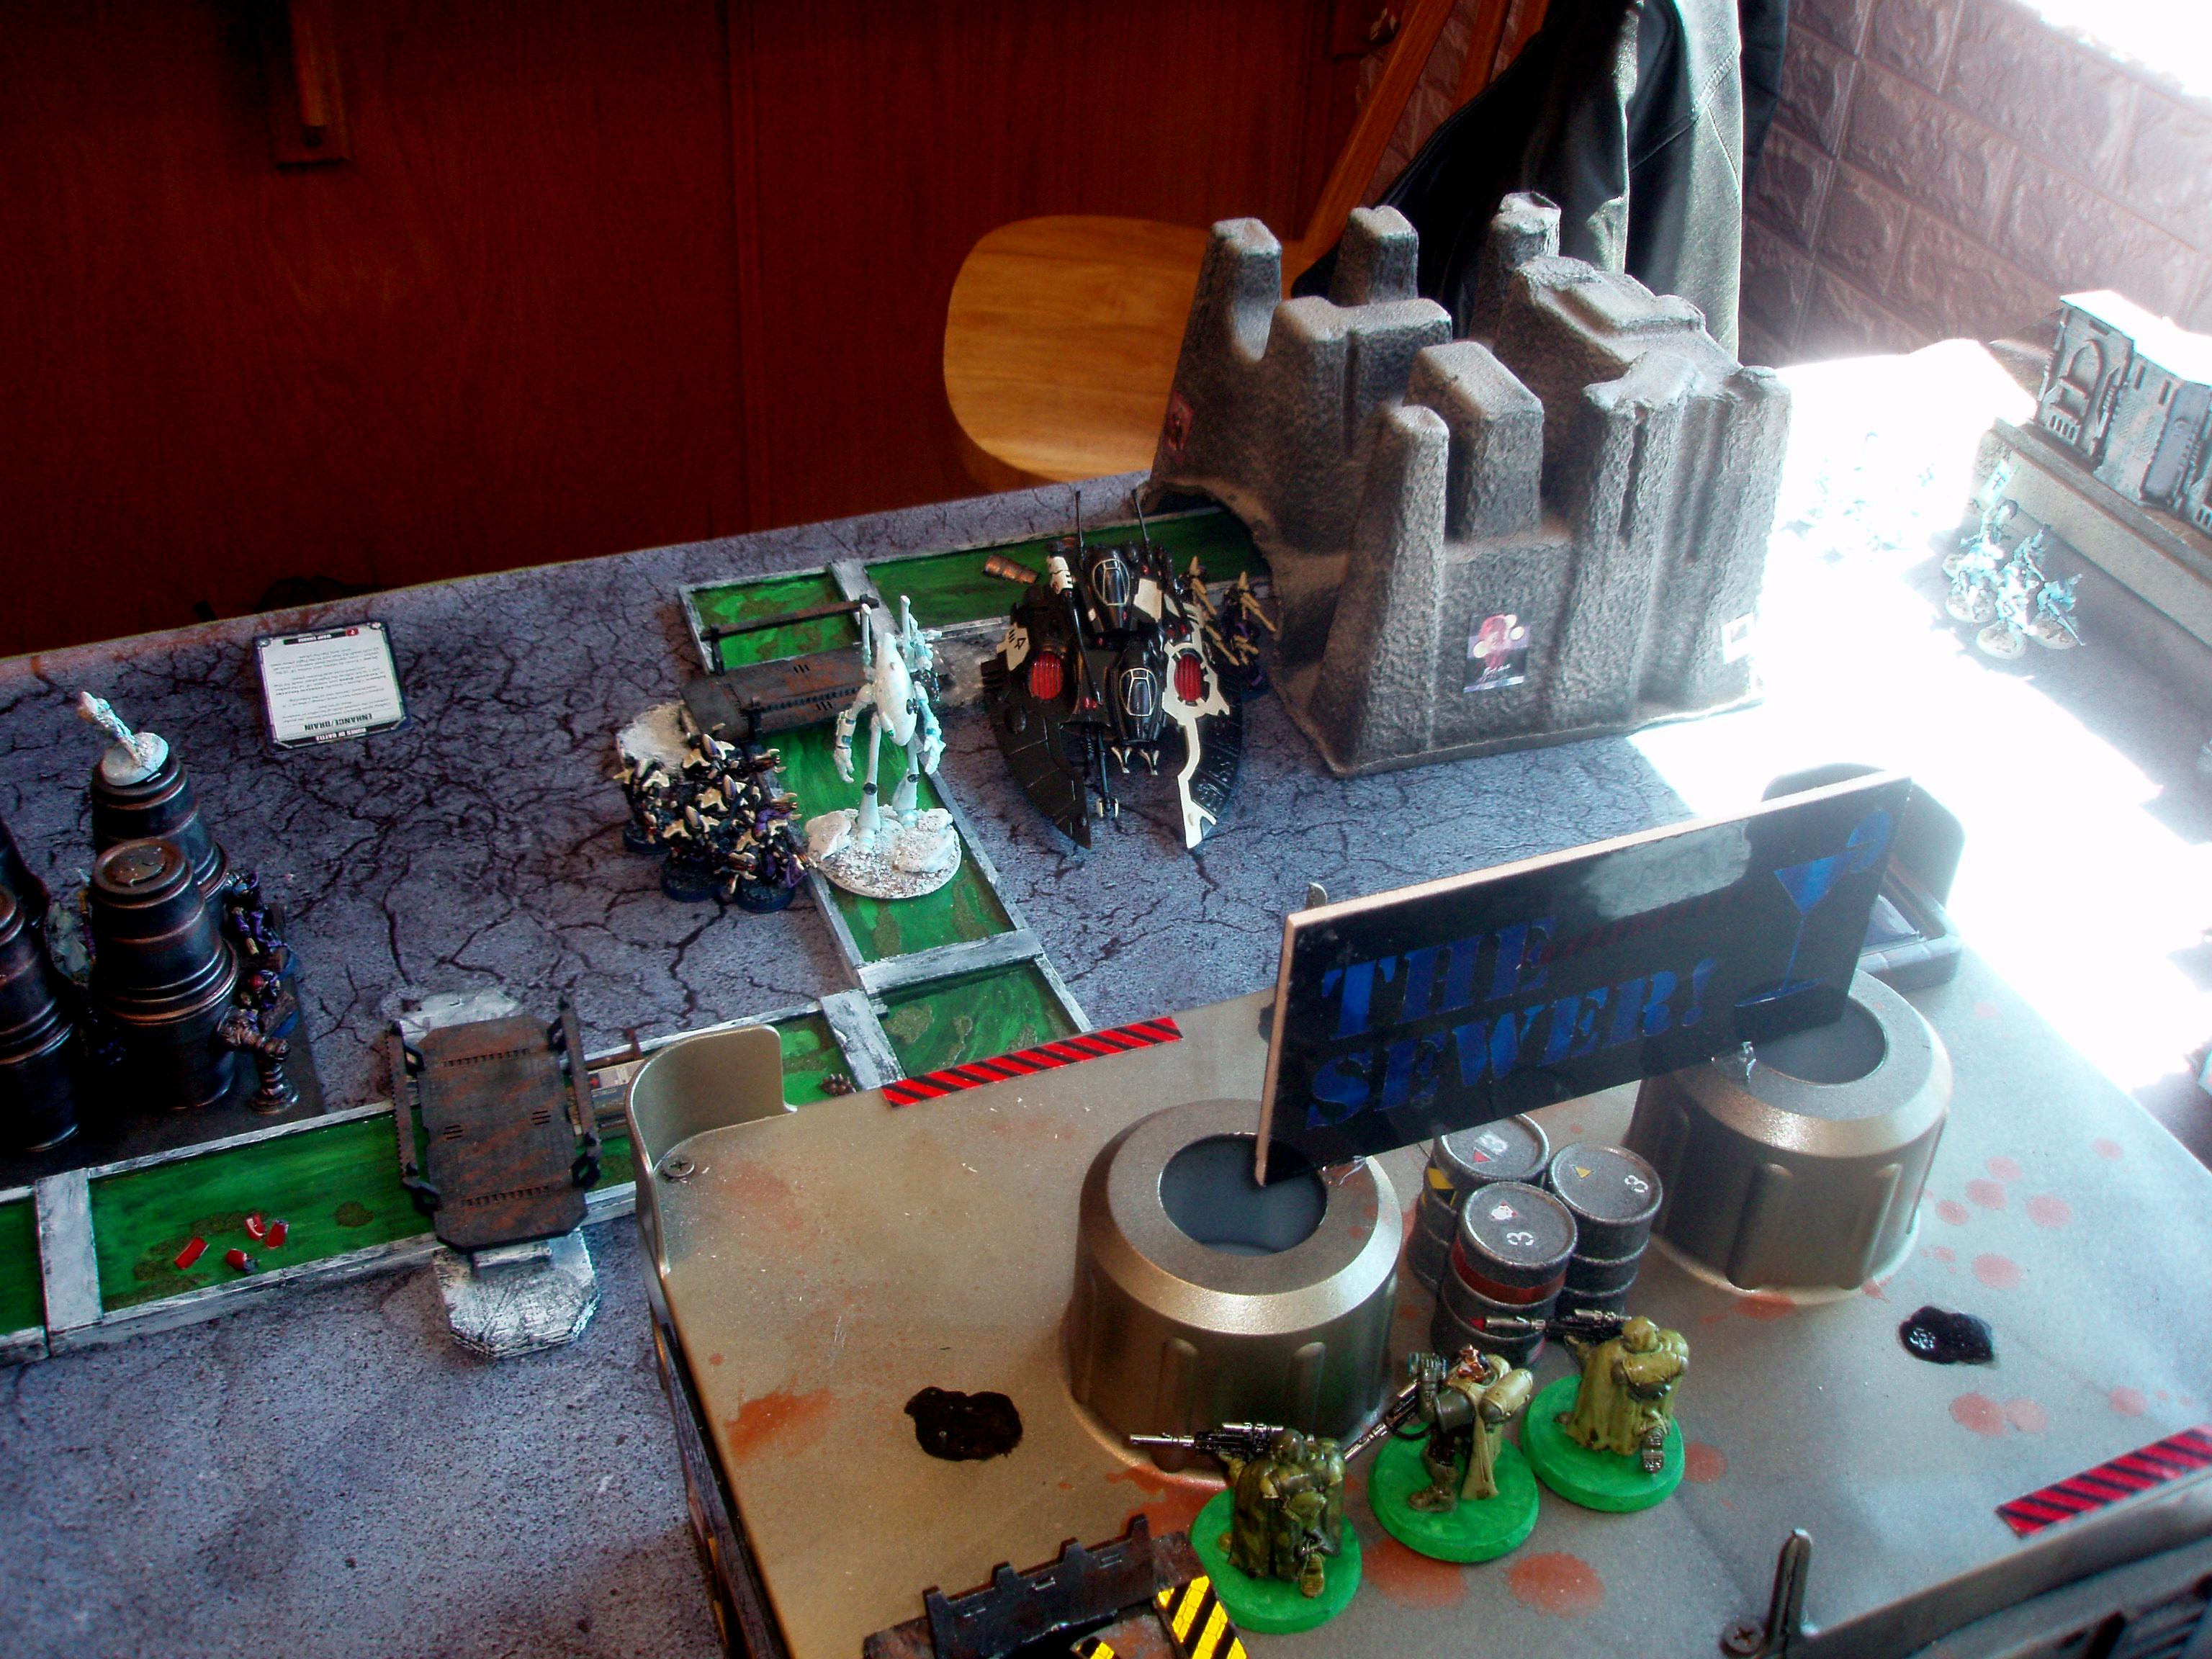 Battle, Hive City, Hive City Battle, Ulthwe, Warhammer 40,000